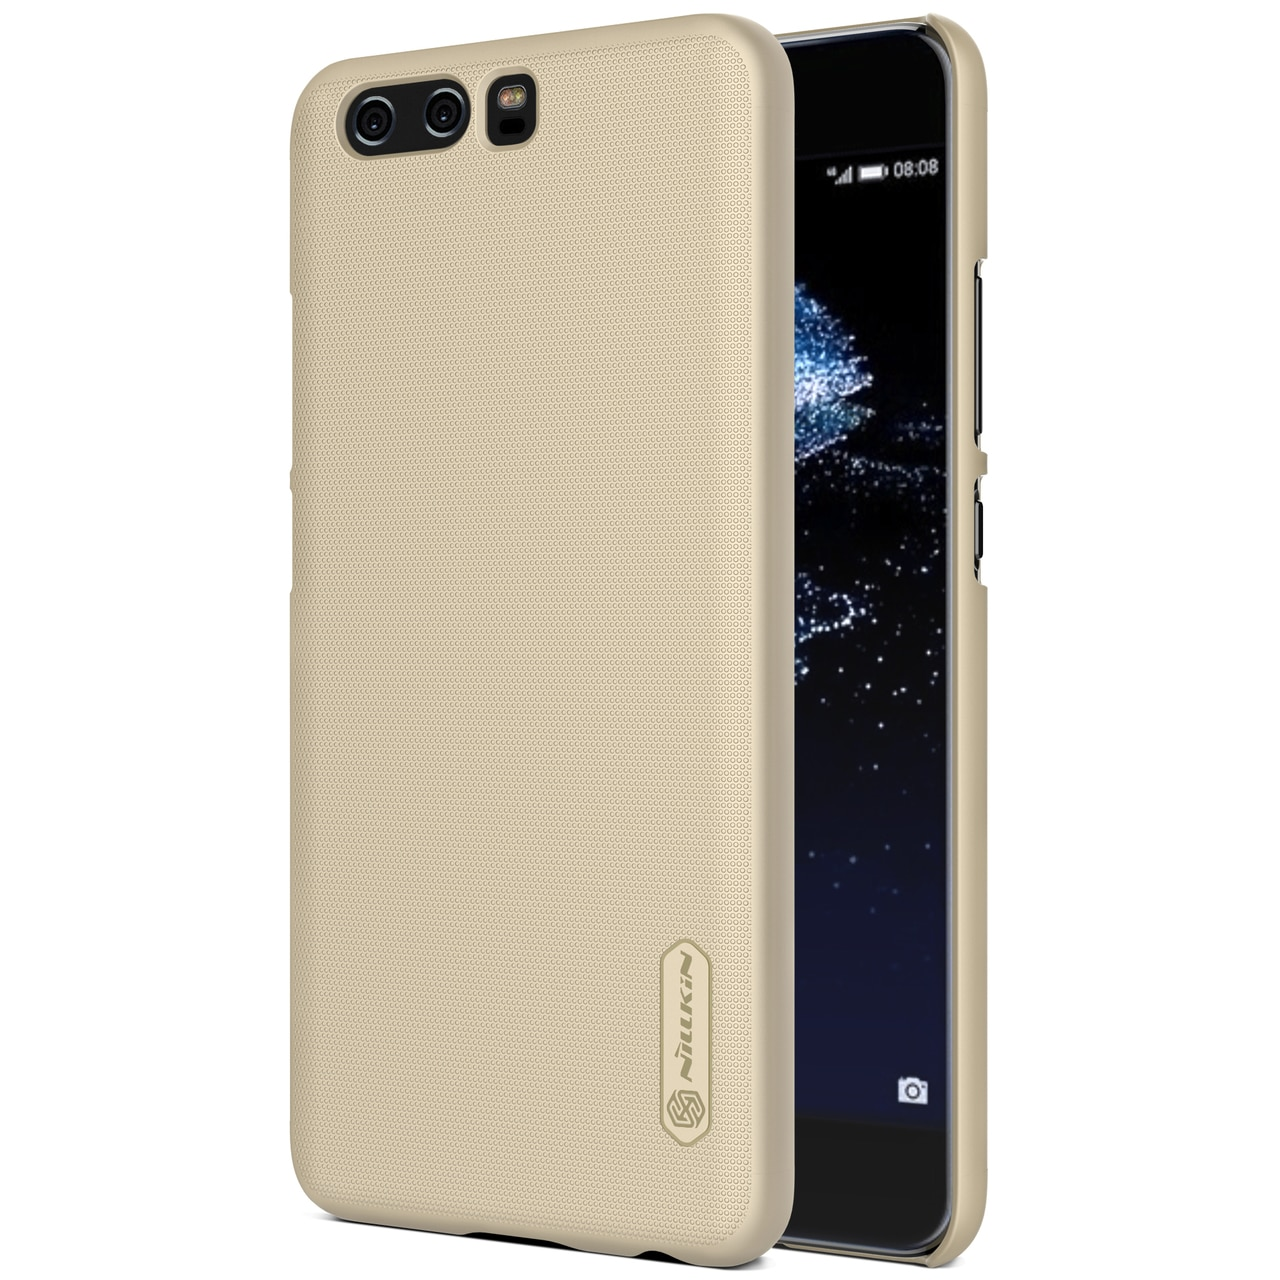 Huawei P10 Plus Frosted Shield Hard Back Cover by Nillkin - Gold